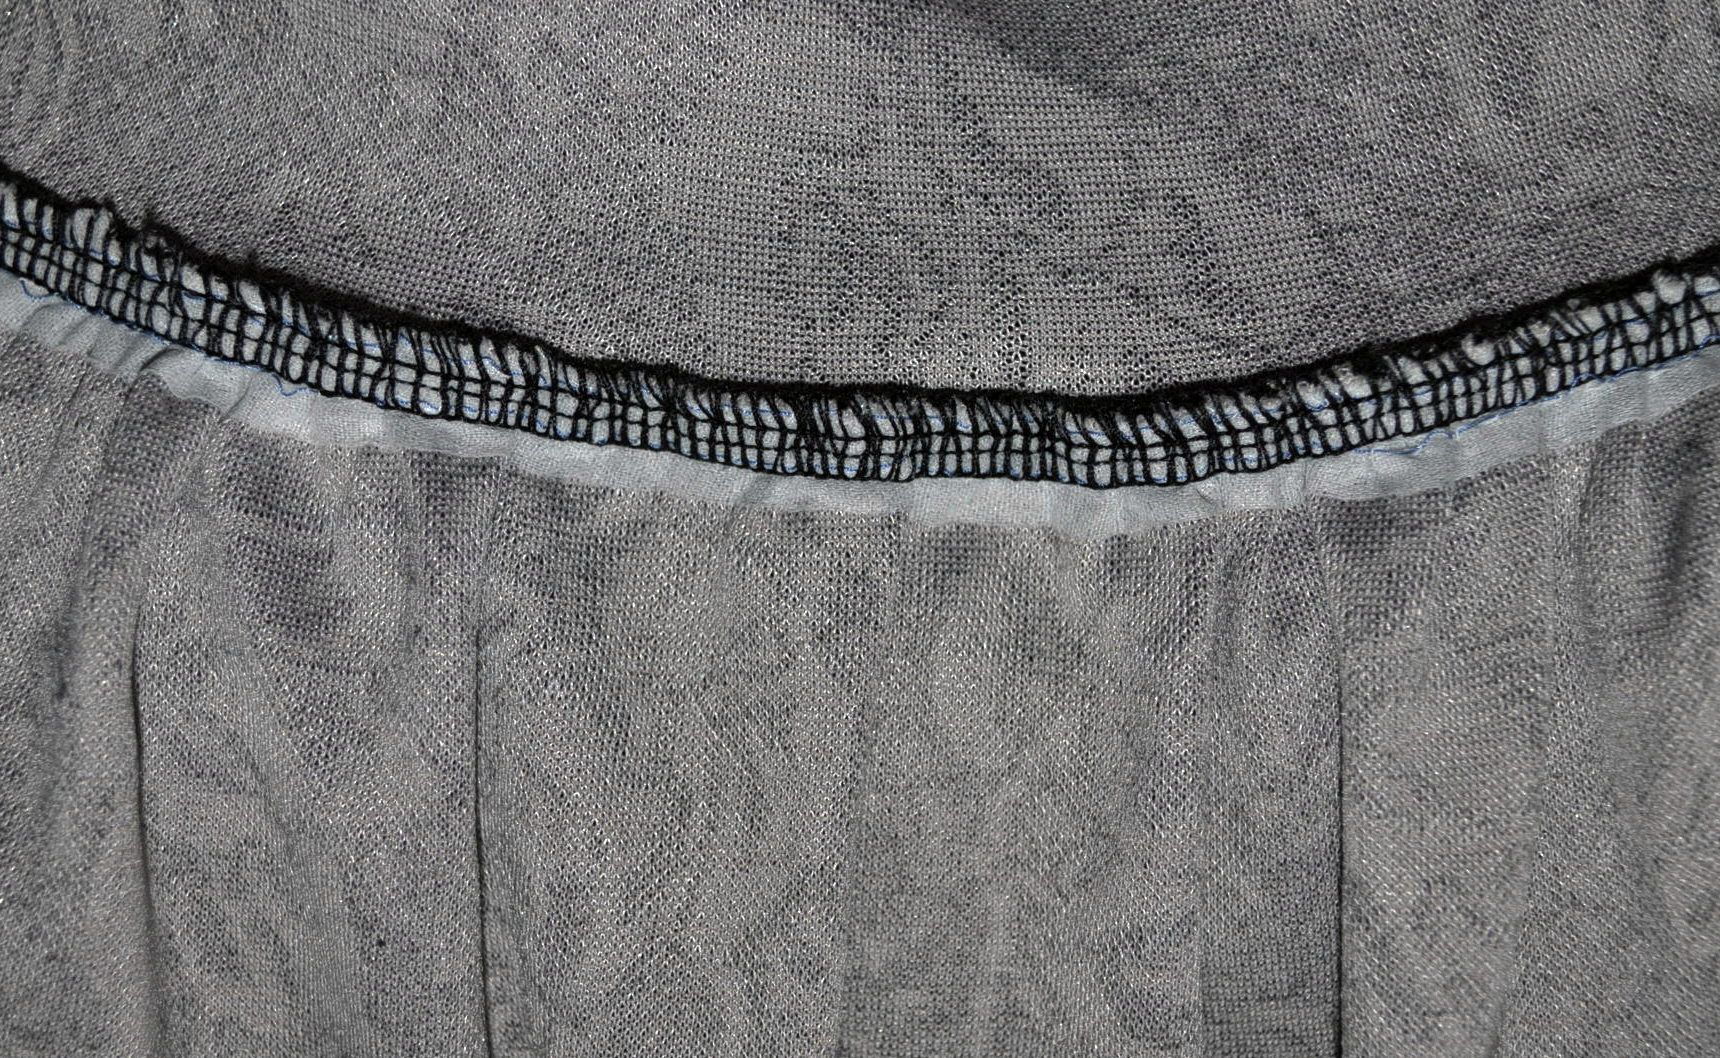 Perfectly gathered using Fuse 'N Gather and then sewed right into the seam.